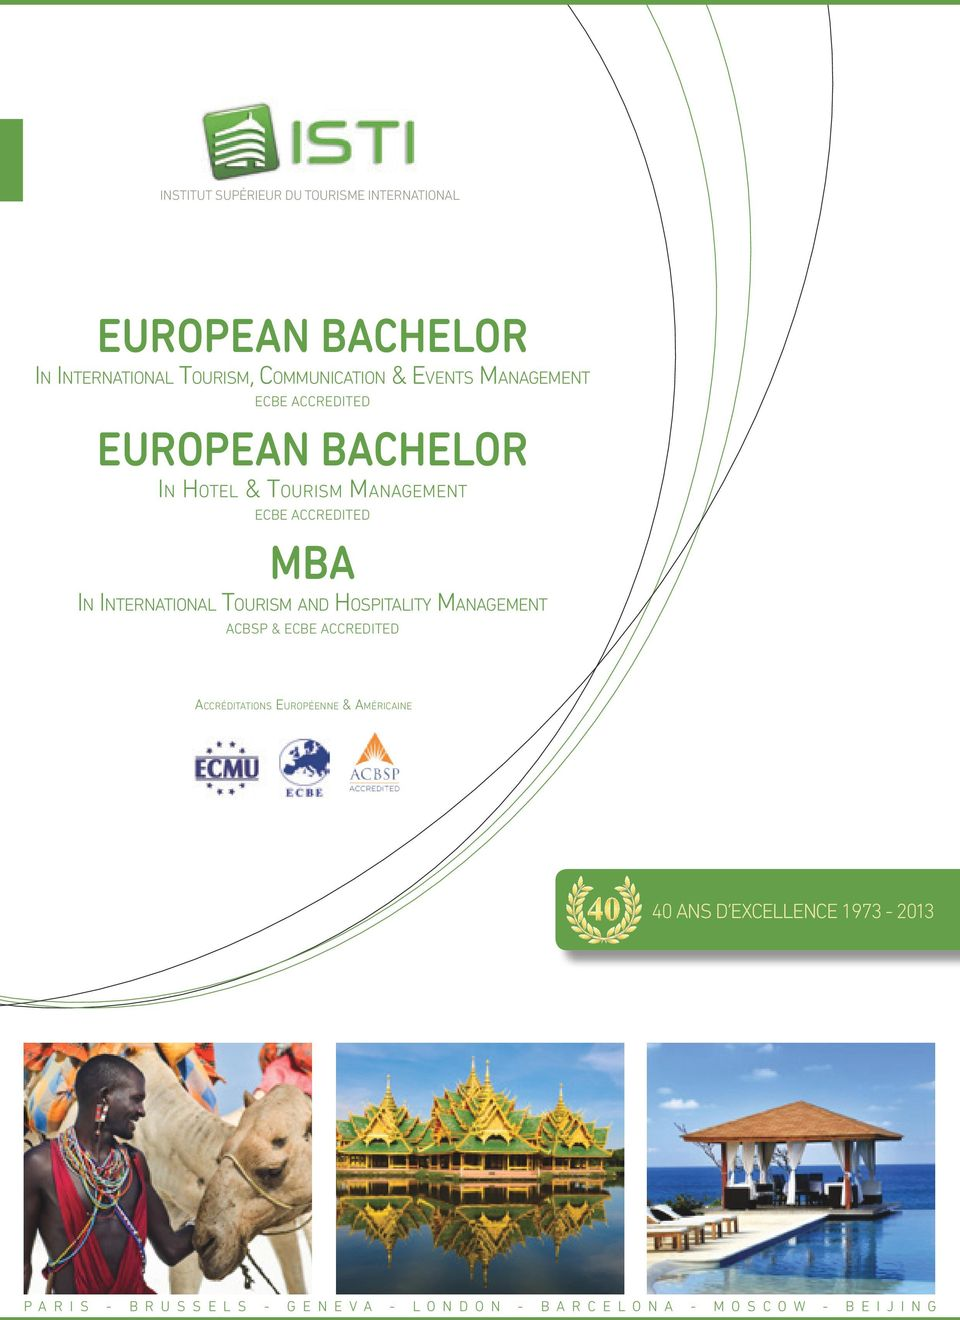 International Tourism and Hospitality Management ACBSP & ECBE ACCREDITED Accréditations Européenne &